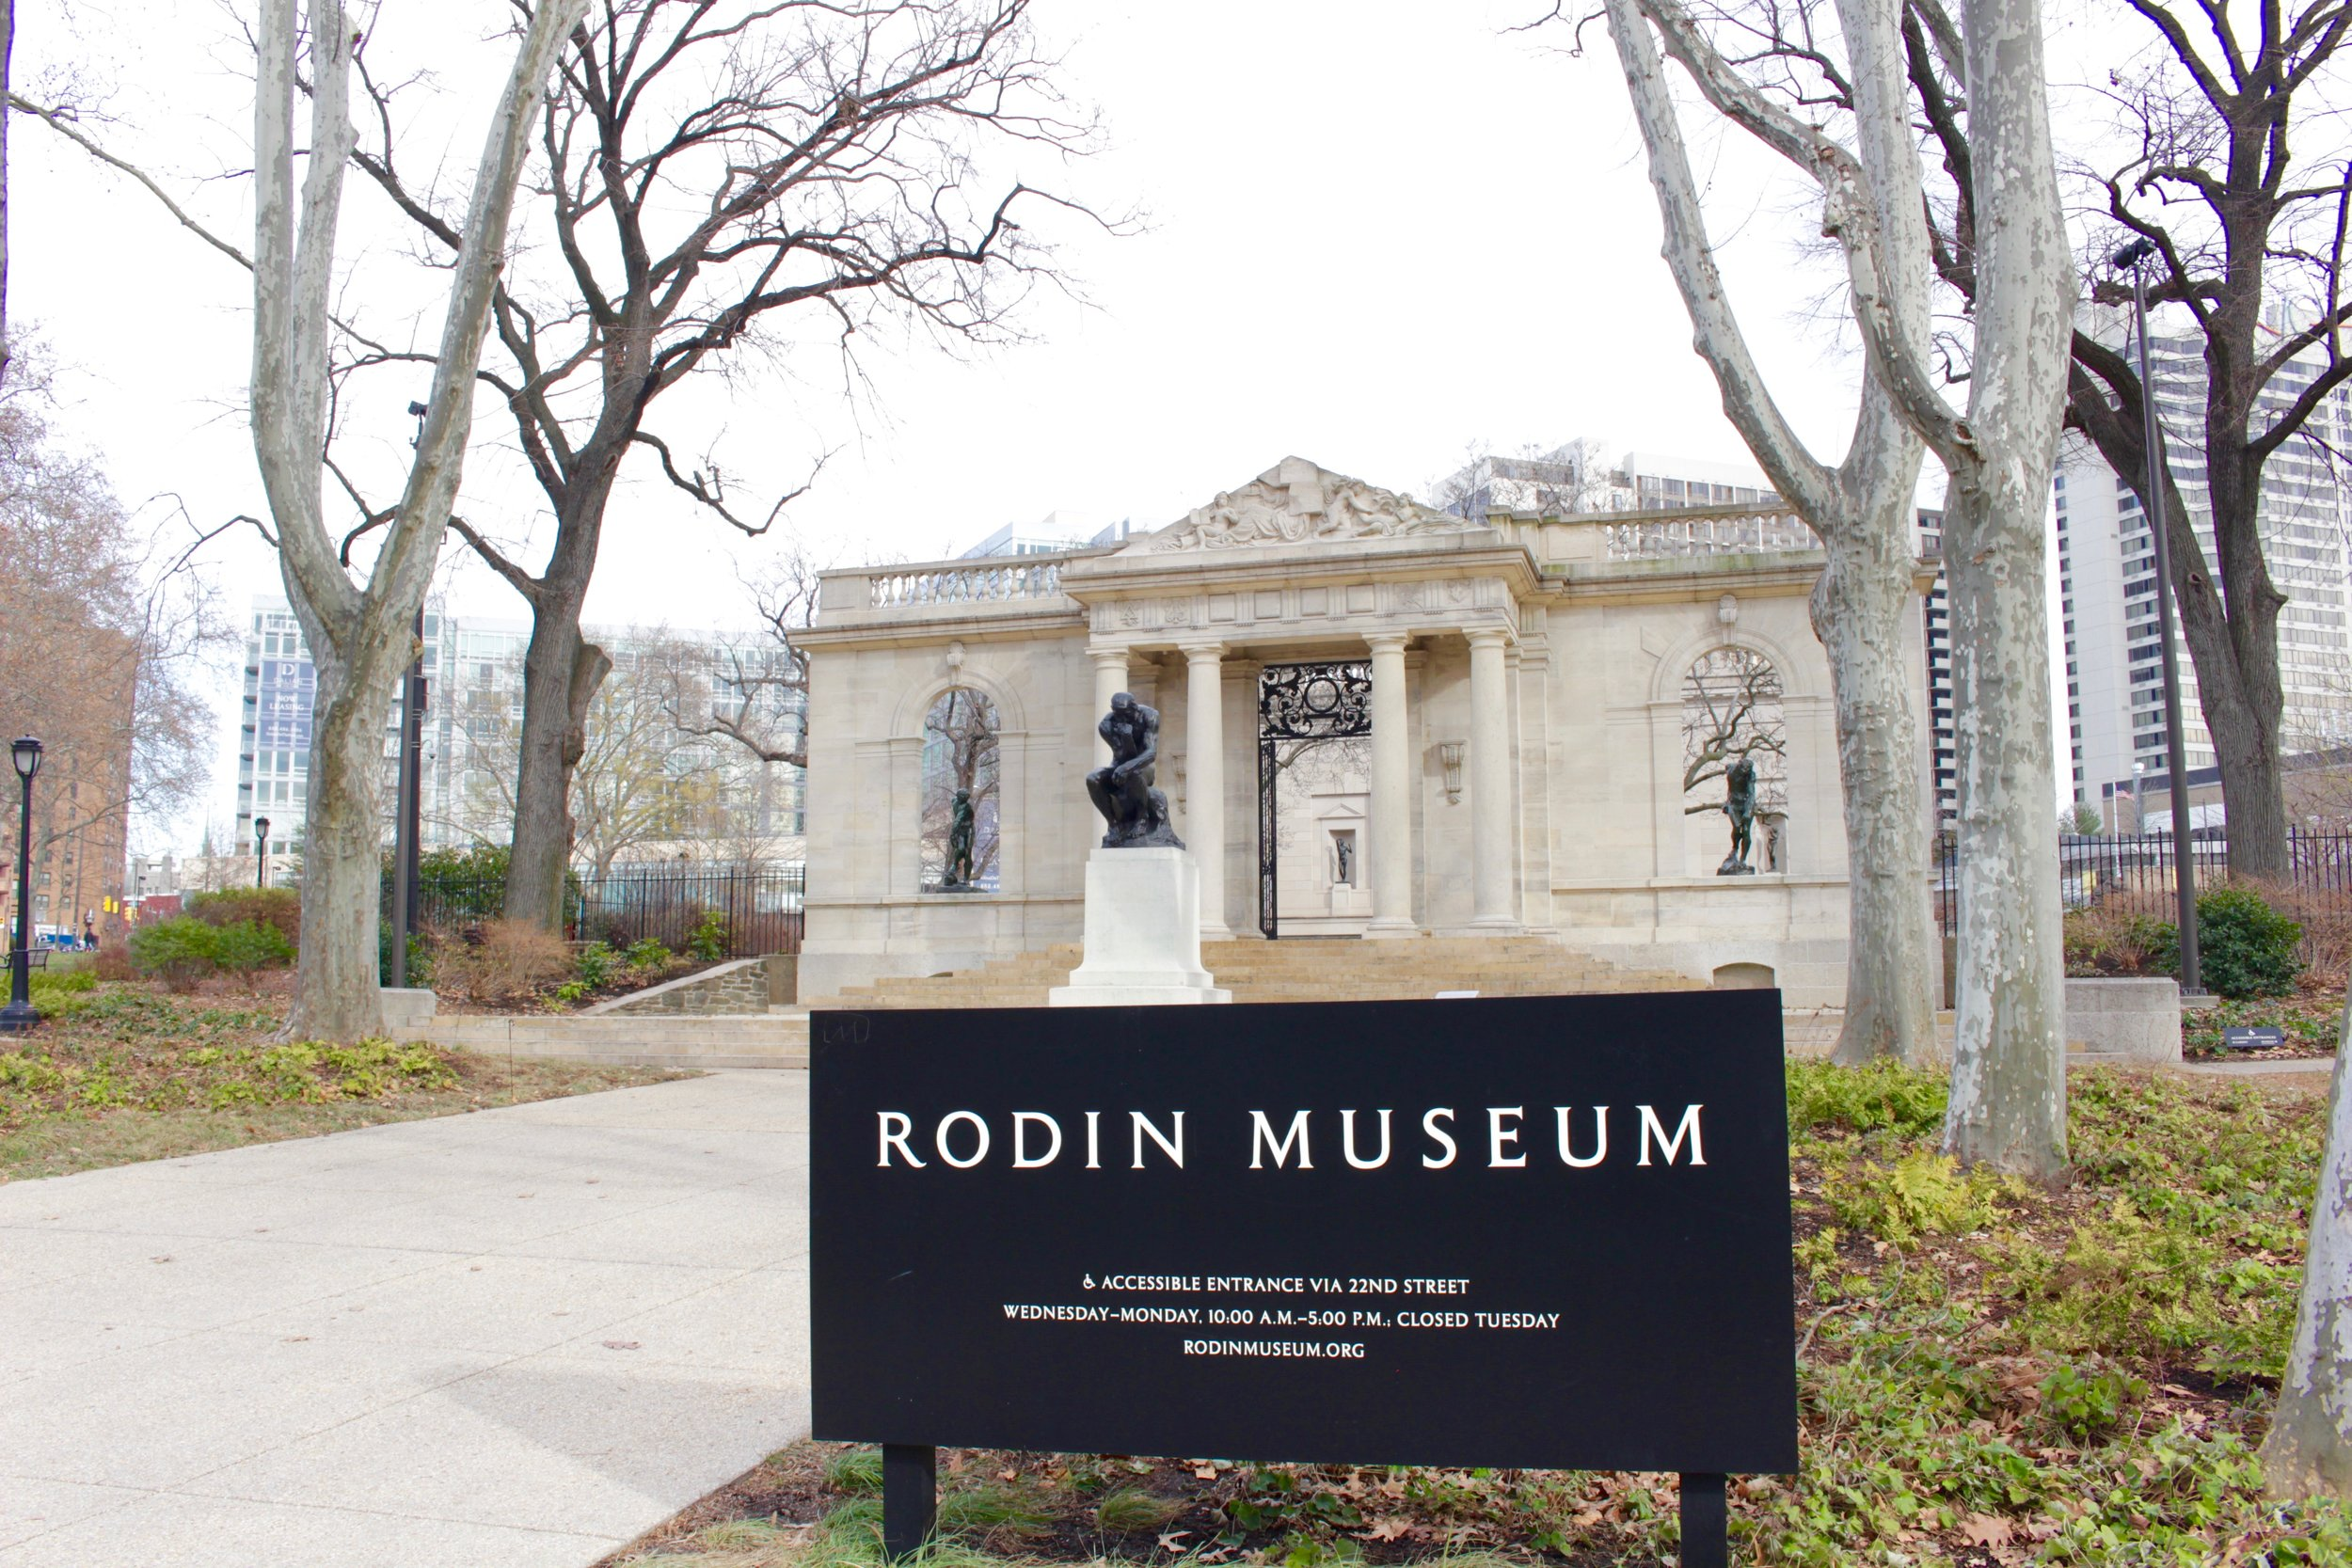 The Rodin Museum in Philadelphia is second to Paris in housing the largest collection of his work.